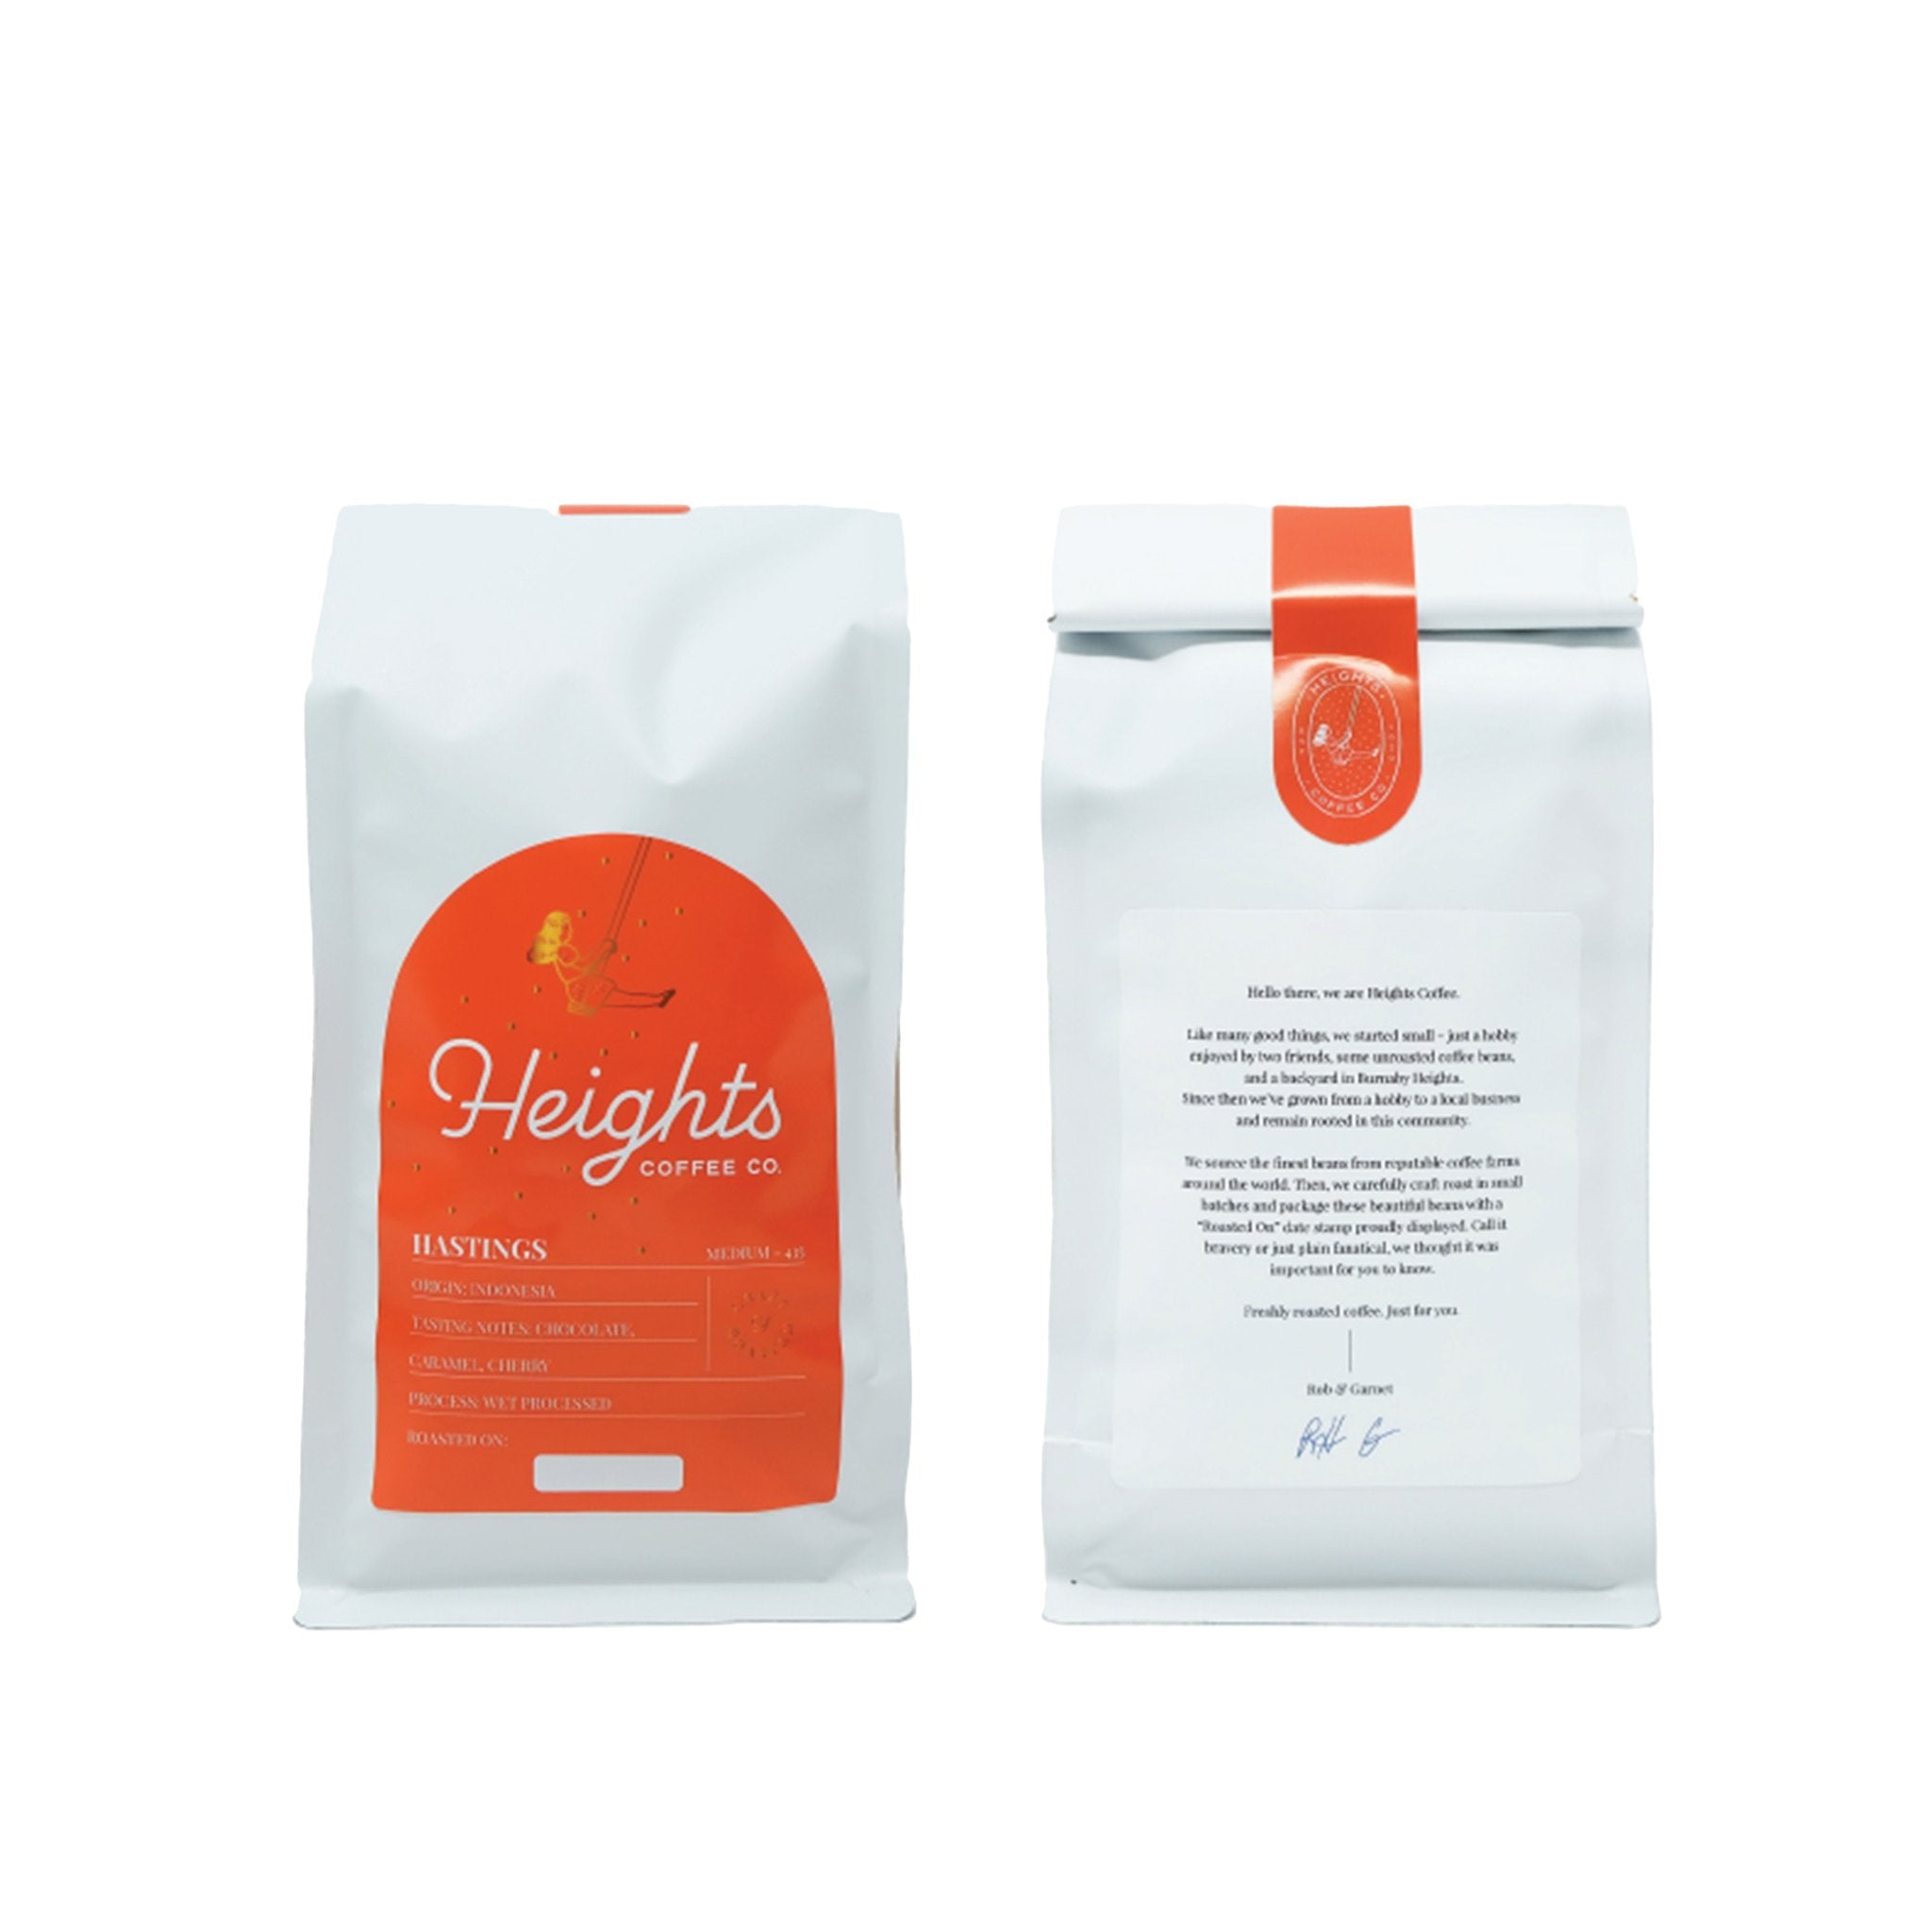 Heights Coffee Co. - Hastings Beans